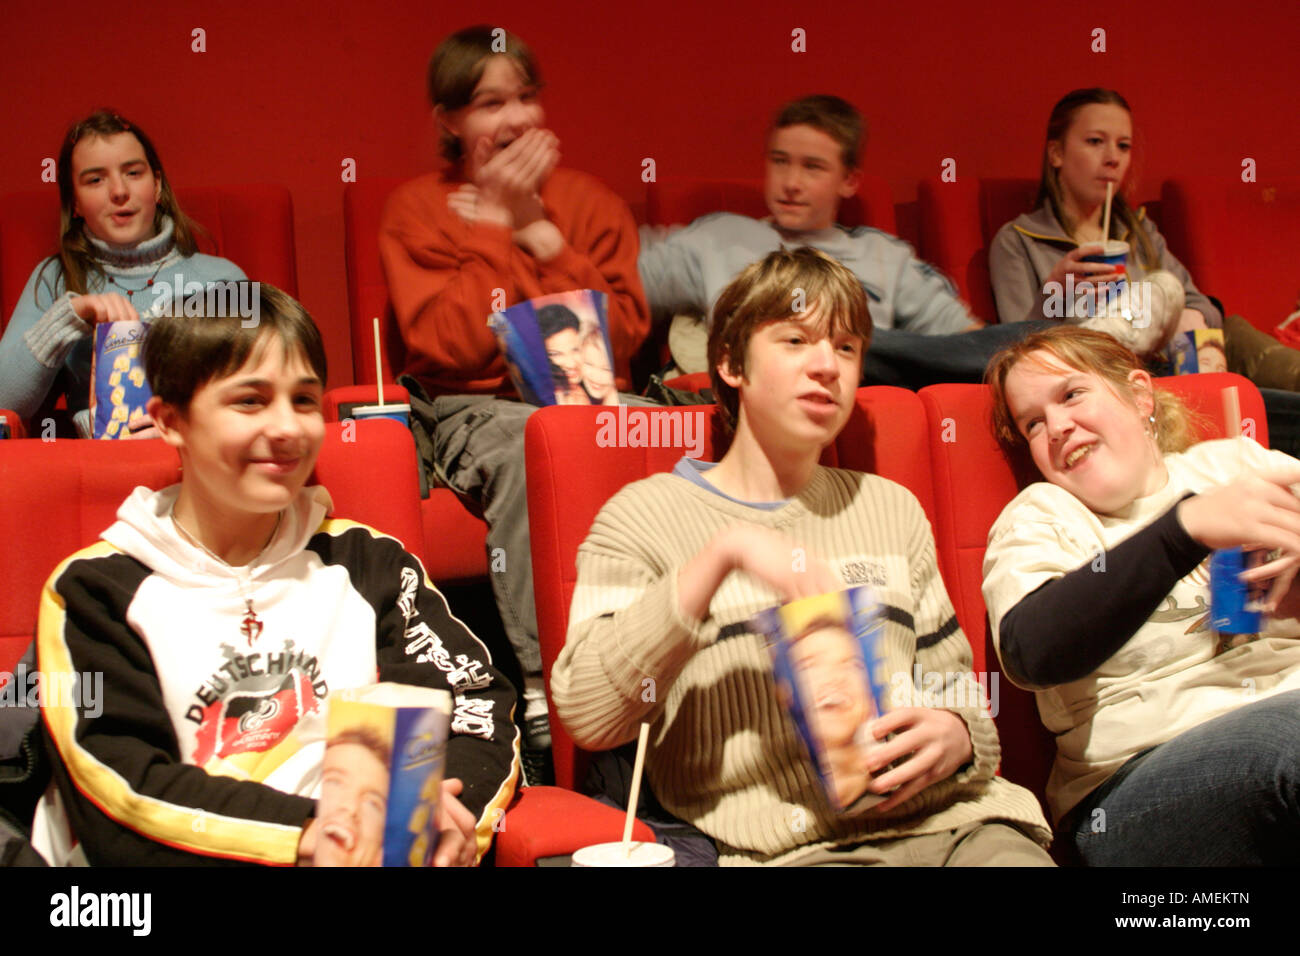 teenagers watching a movie at a cinema - Stock Image